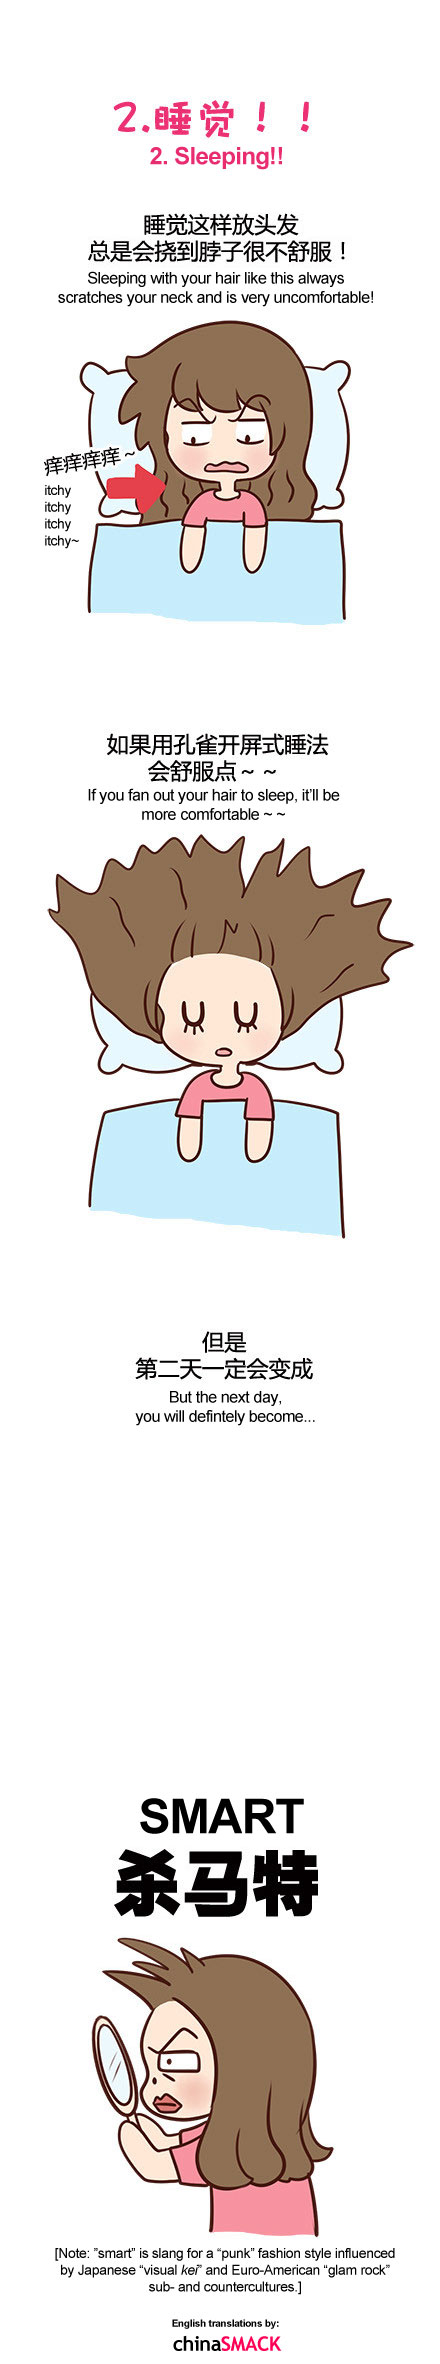 chinese-weibo-greatanny-hair-troubles-annoyances-for-women-02-english-translation